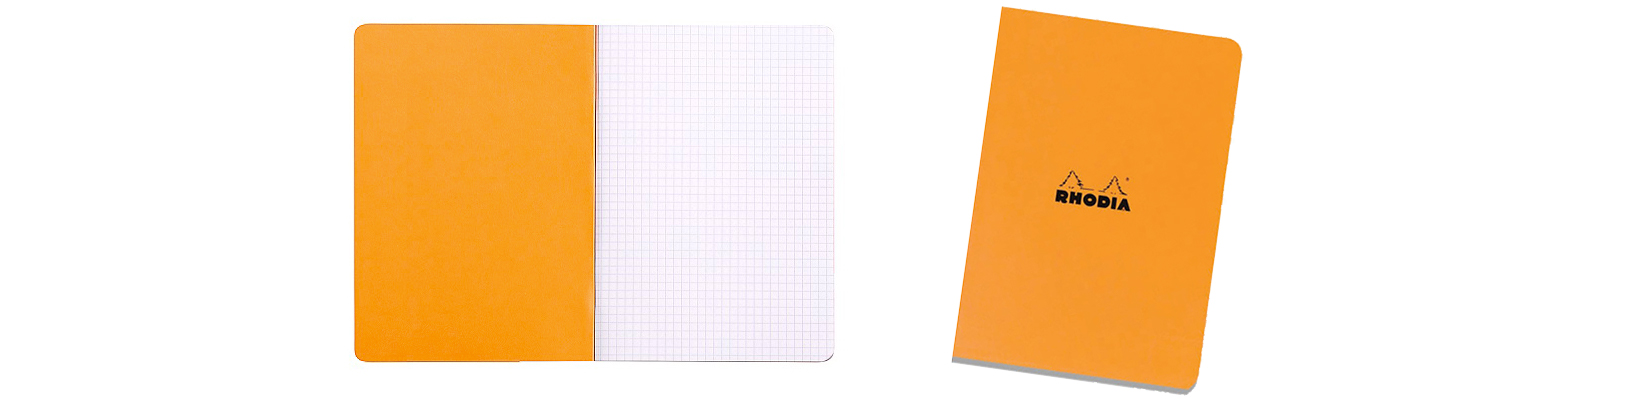 rhodia a5 orange notebook